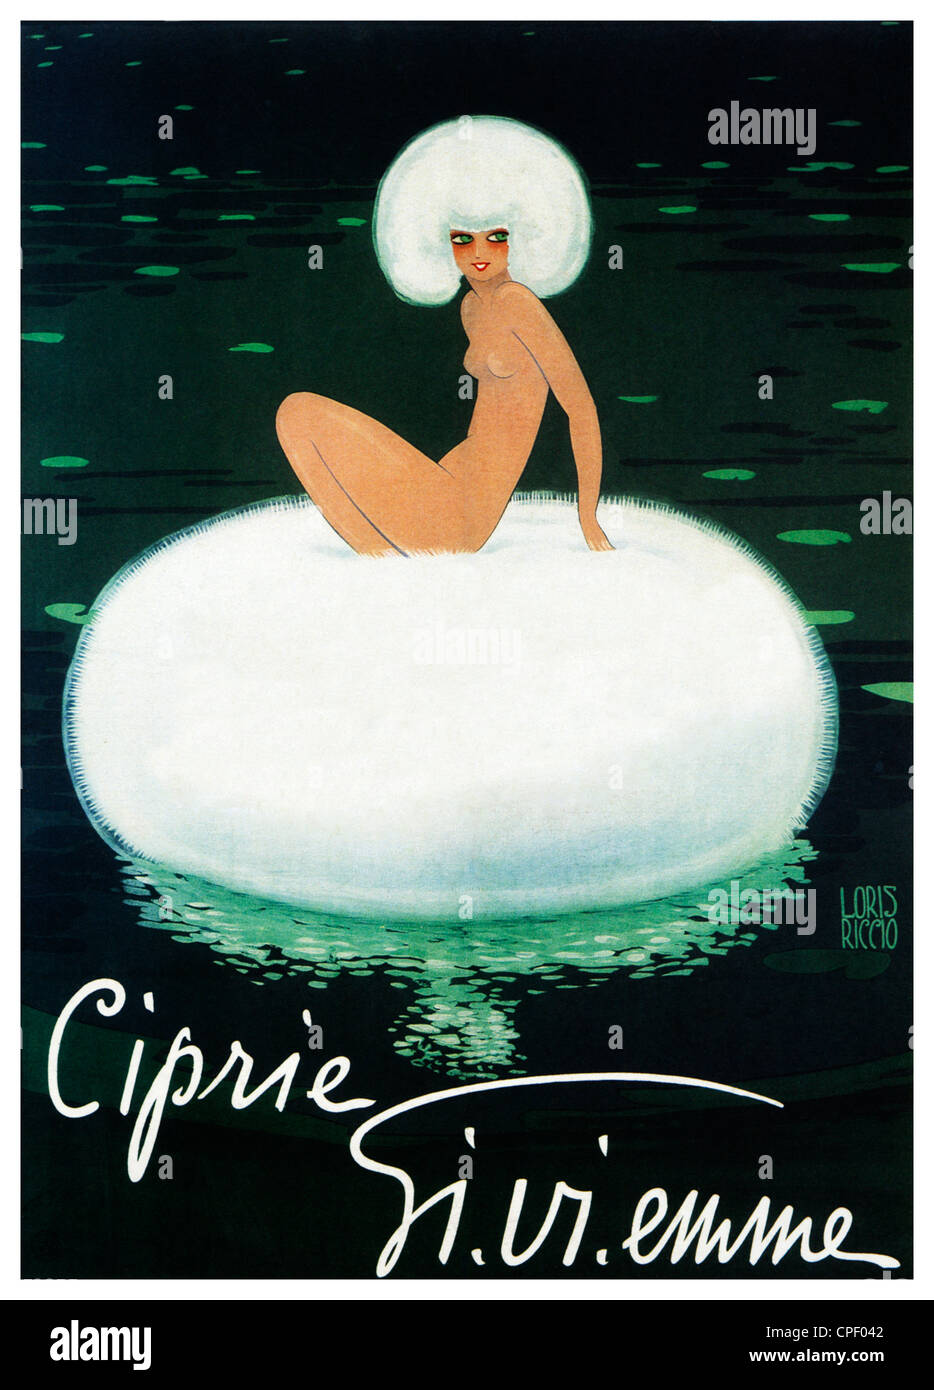 Ciprie Gi Vi Emme, 1920 Art Deco poster for the Italian face powder, puff floating on a lily pond - Stock Image